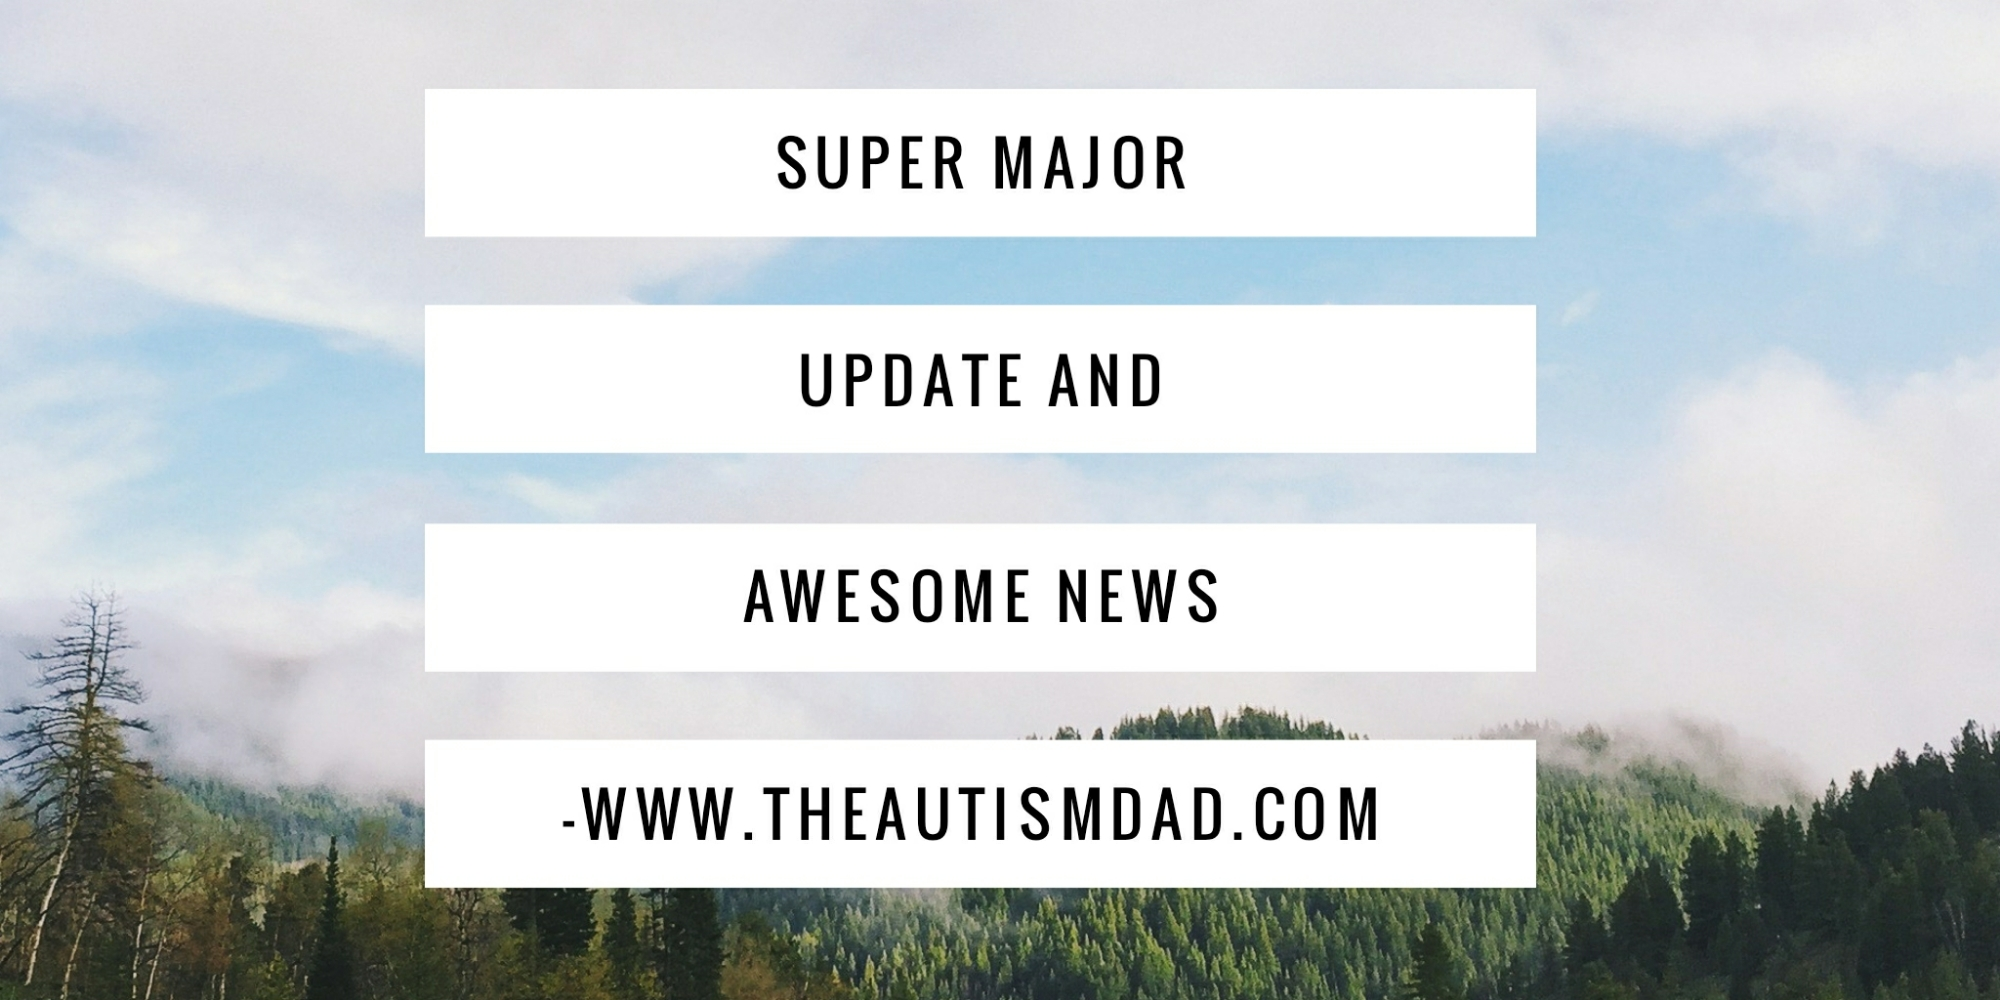 Super Major Update and Awesome News